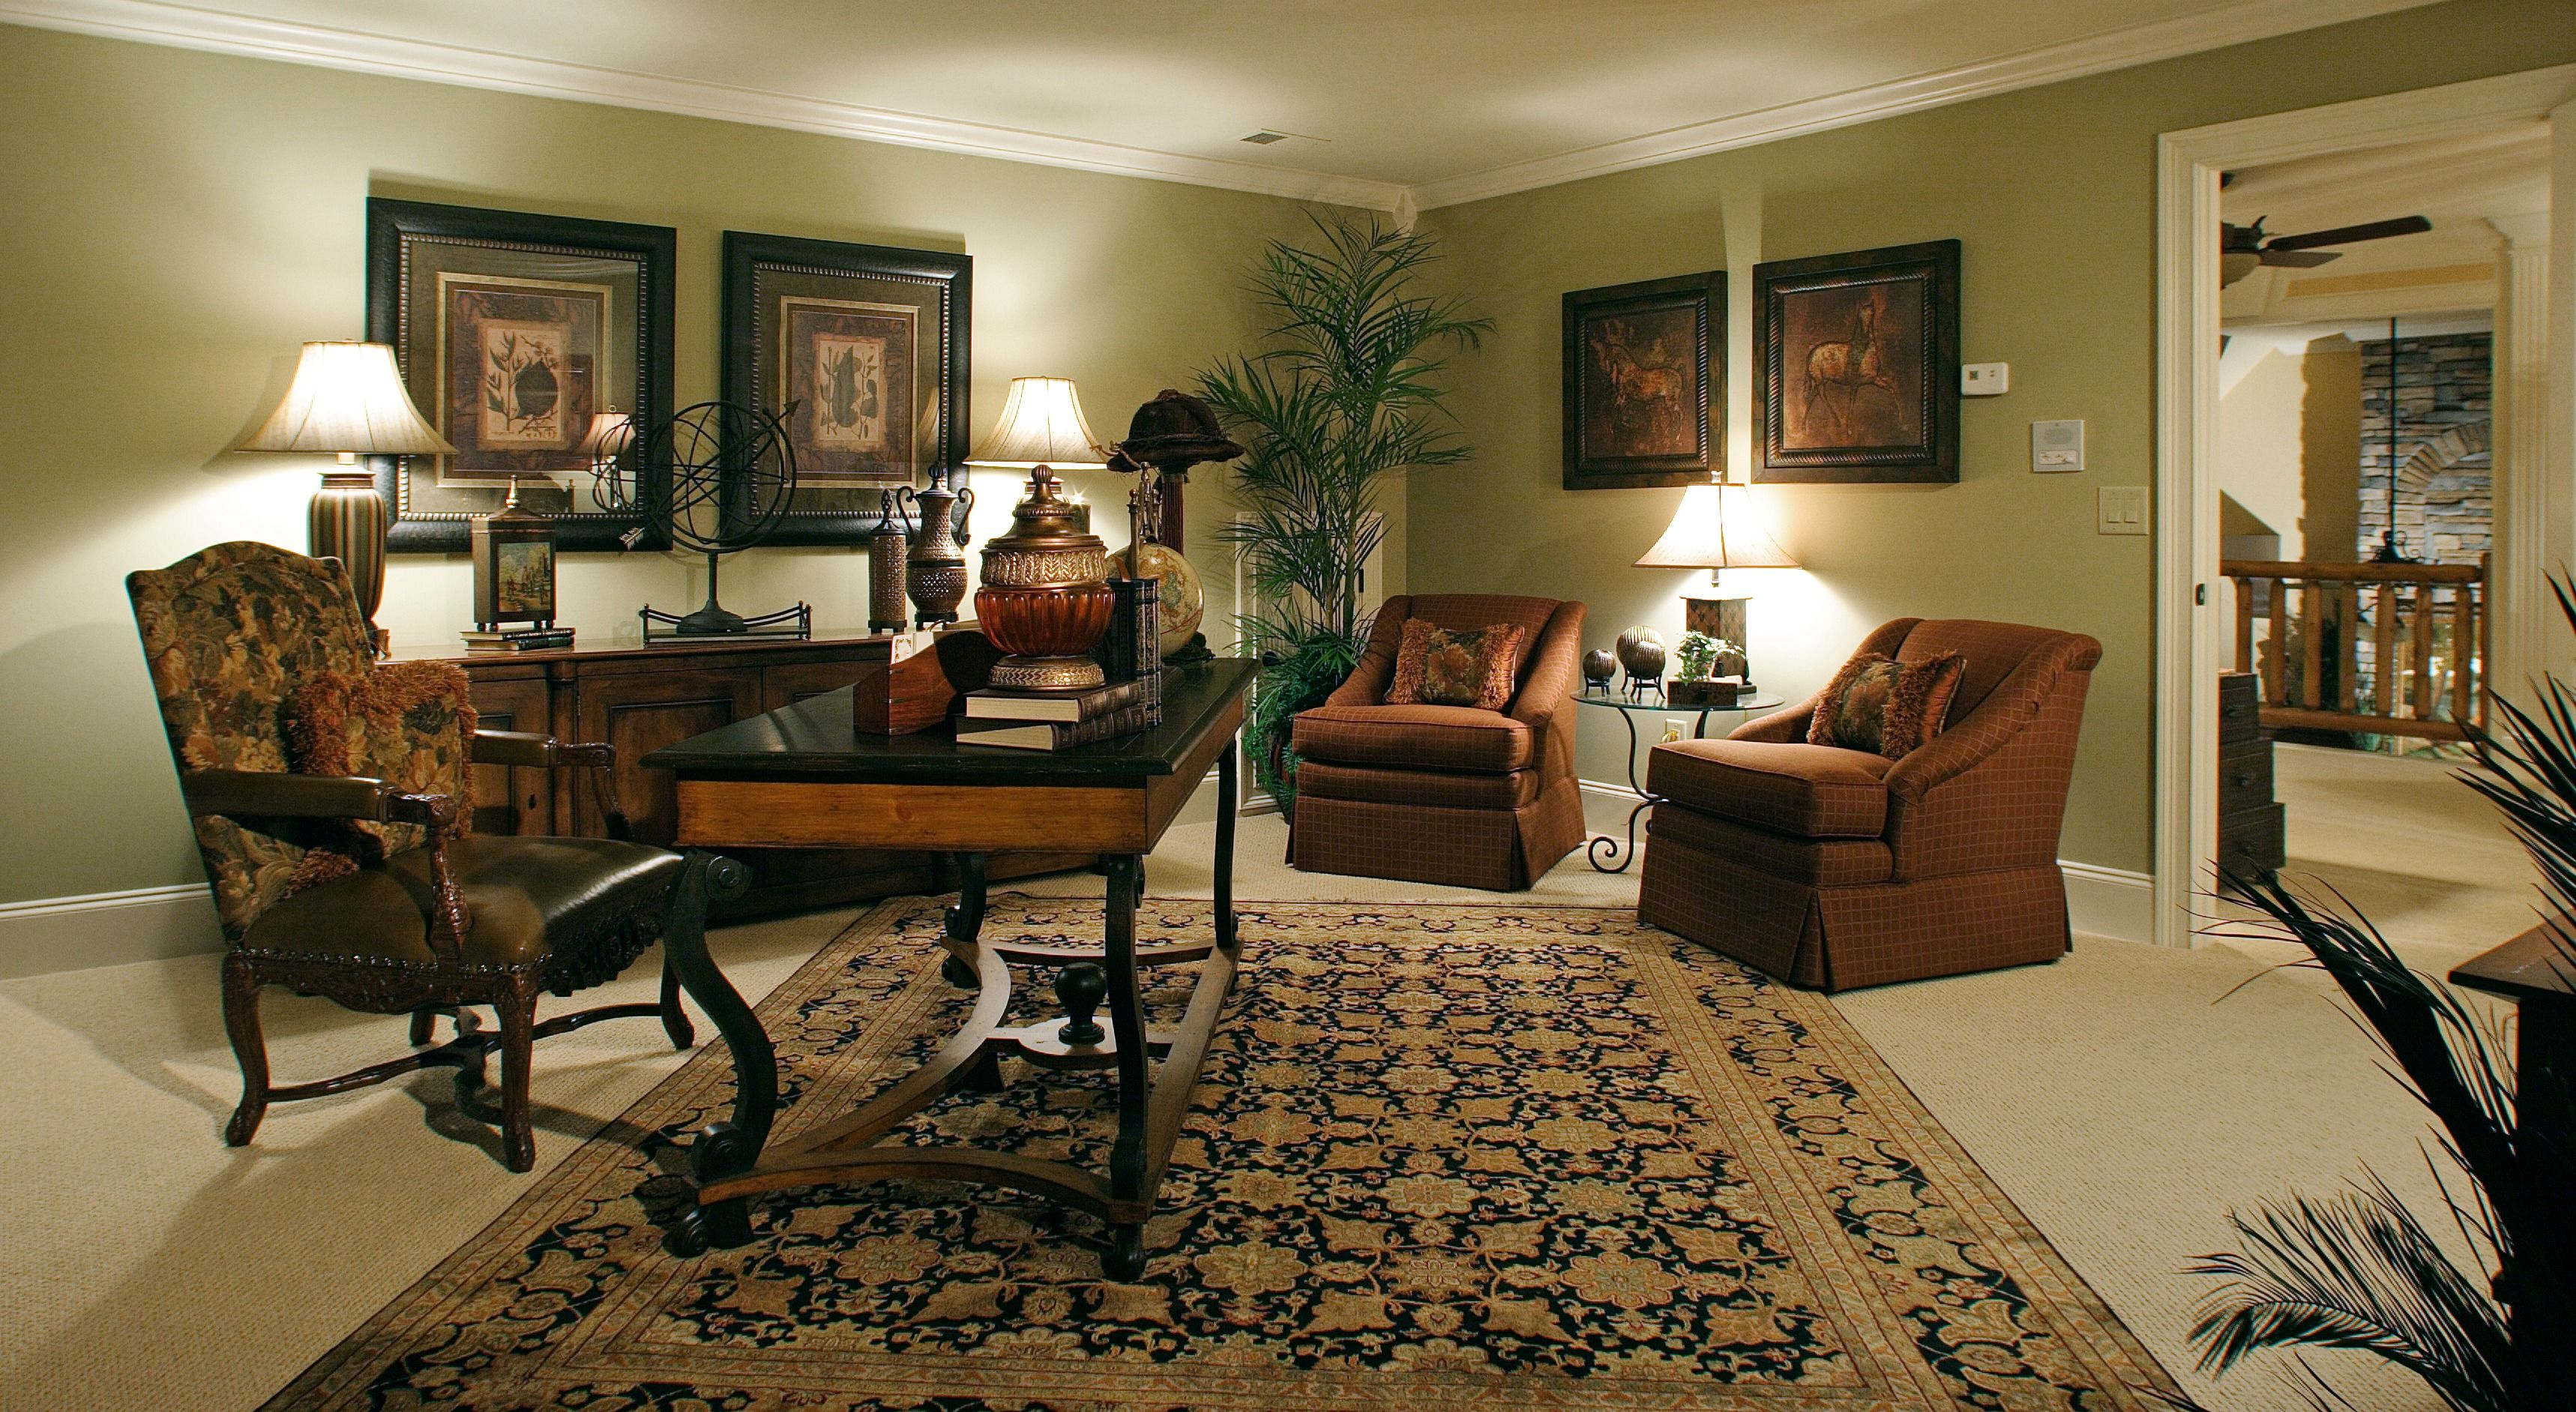 How much does an interior designer cost design prices also costs large area rugs writing desk and green rh pinterest